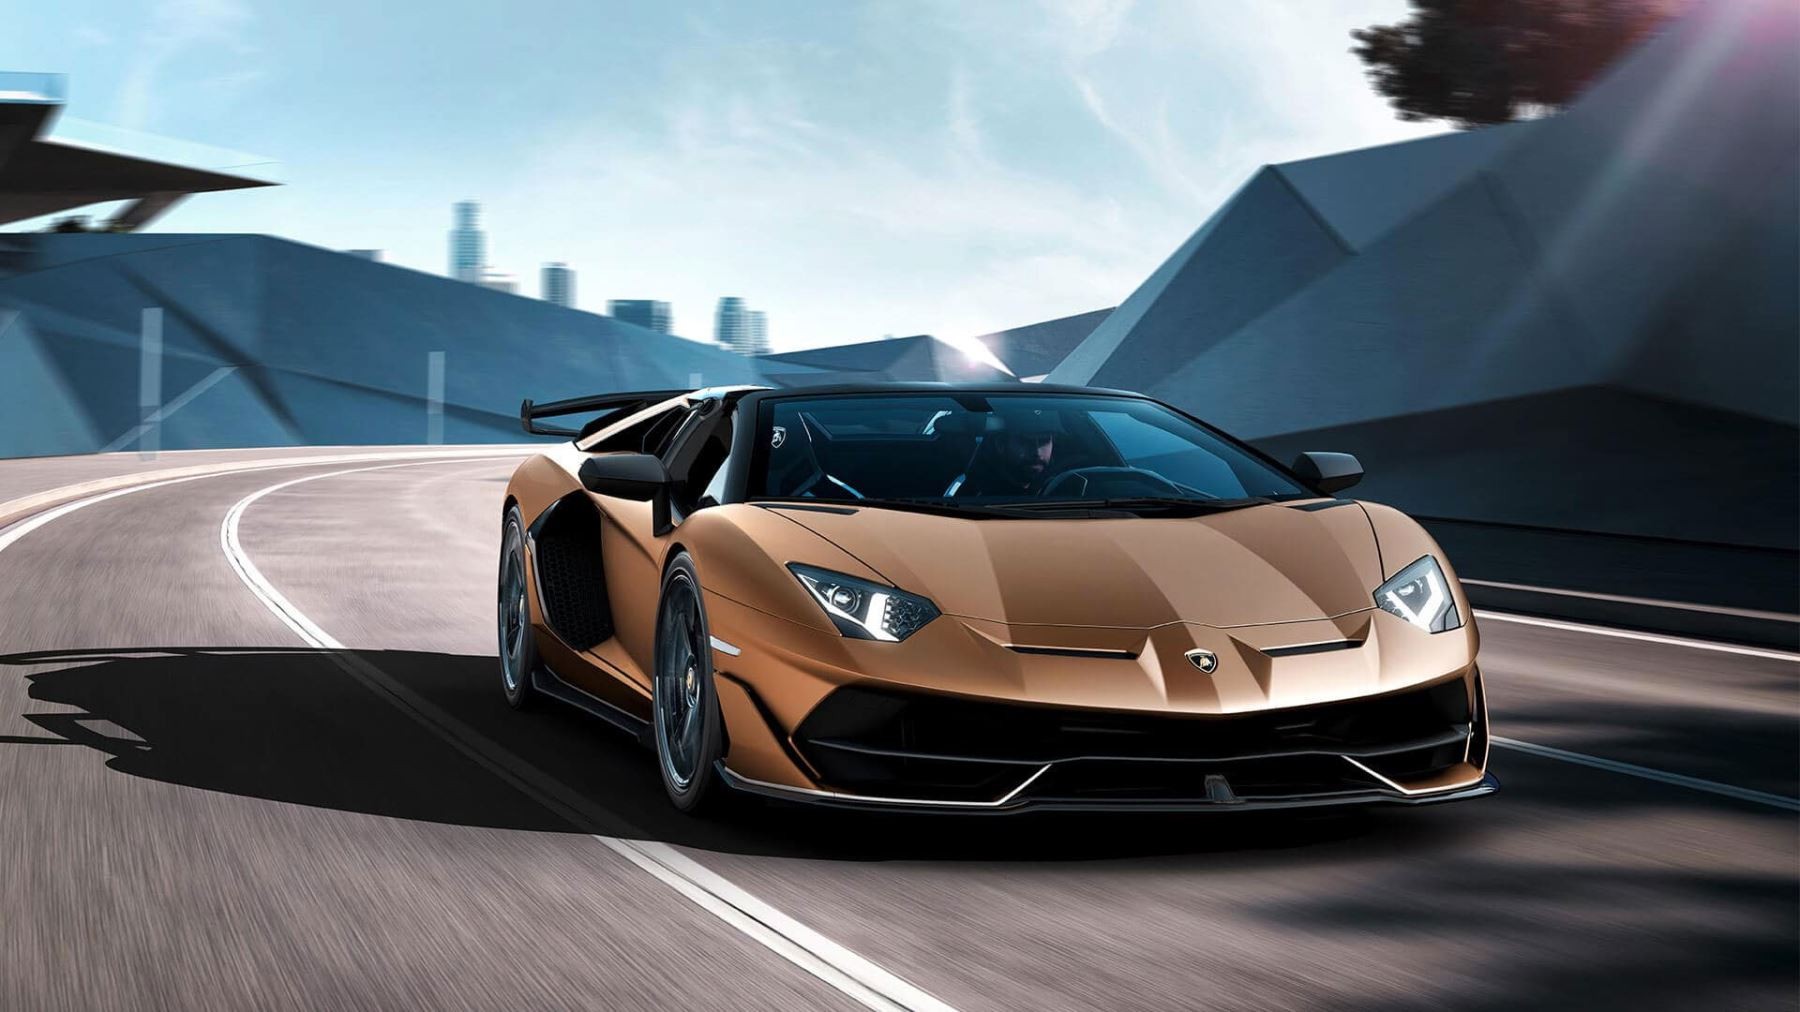 Lamborghini Aventador SVJ Roadster - Real emotions shape the future image 1